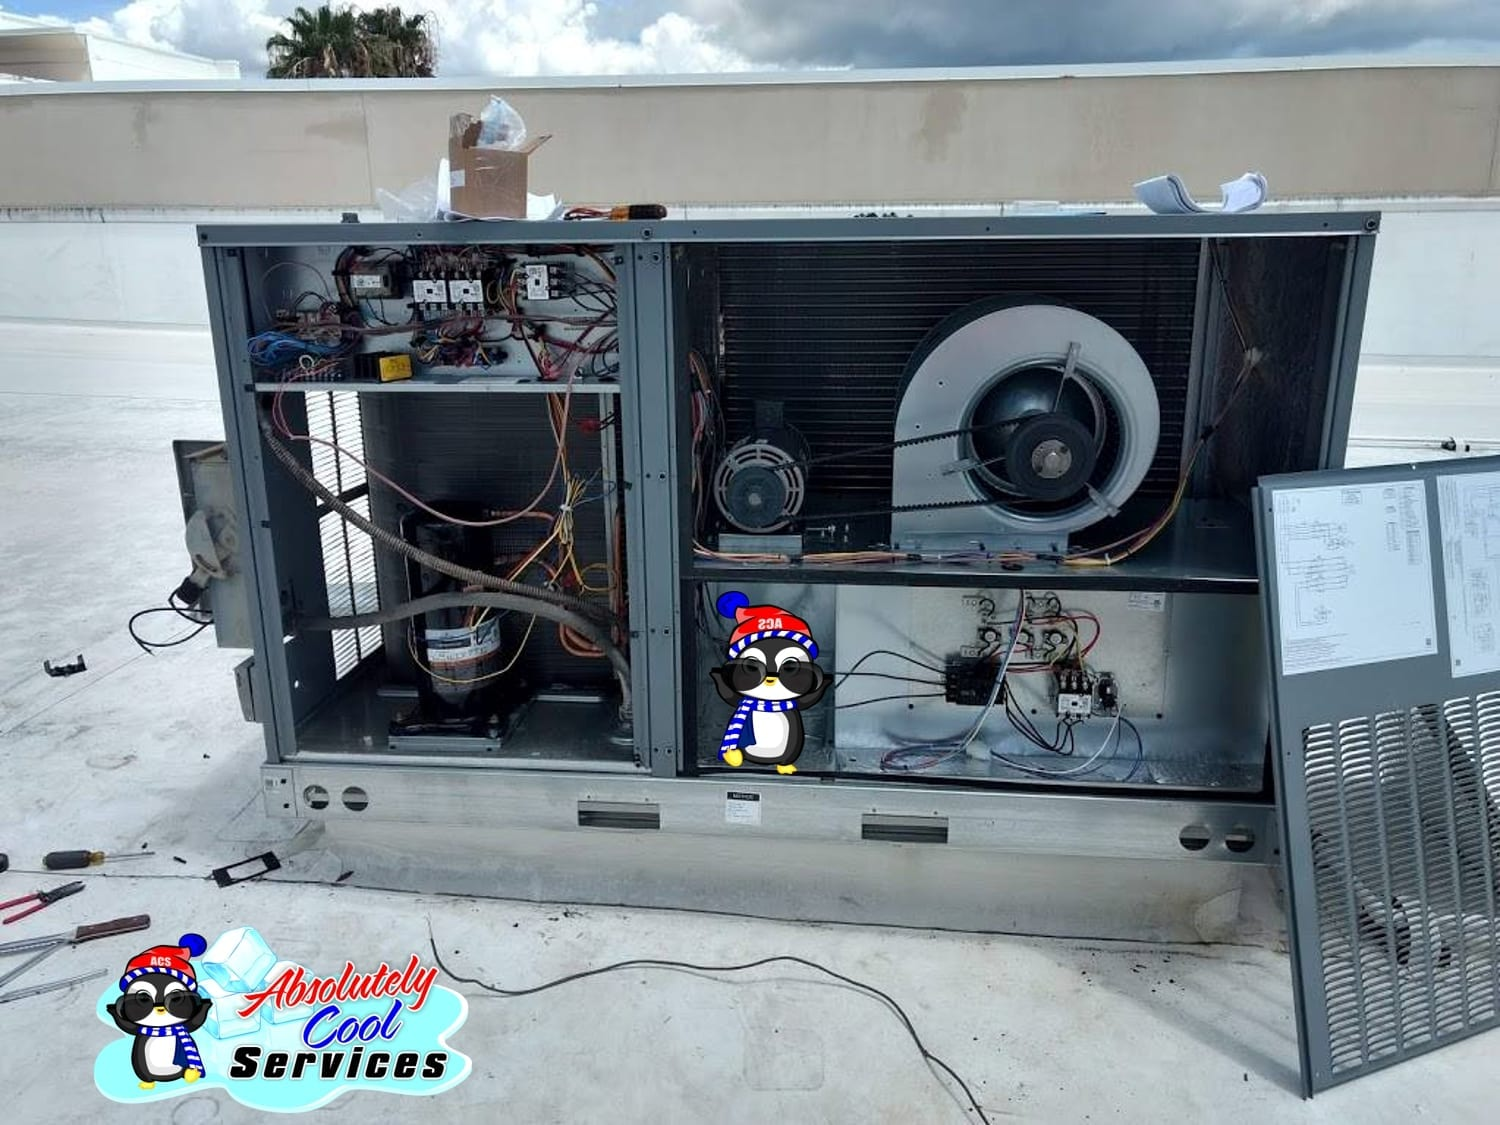 Roof Air Conditioning | HVAC Repair Company near West Palm Beach